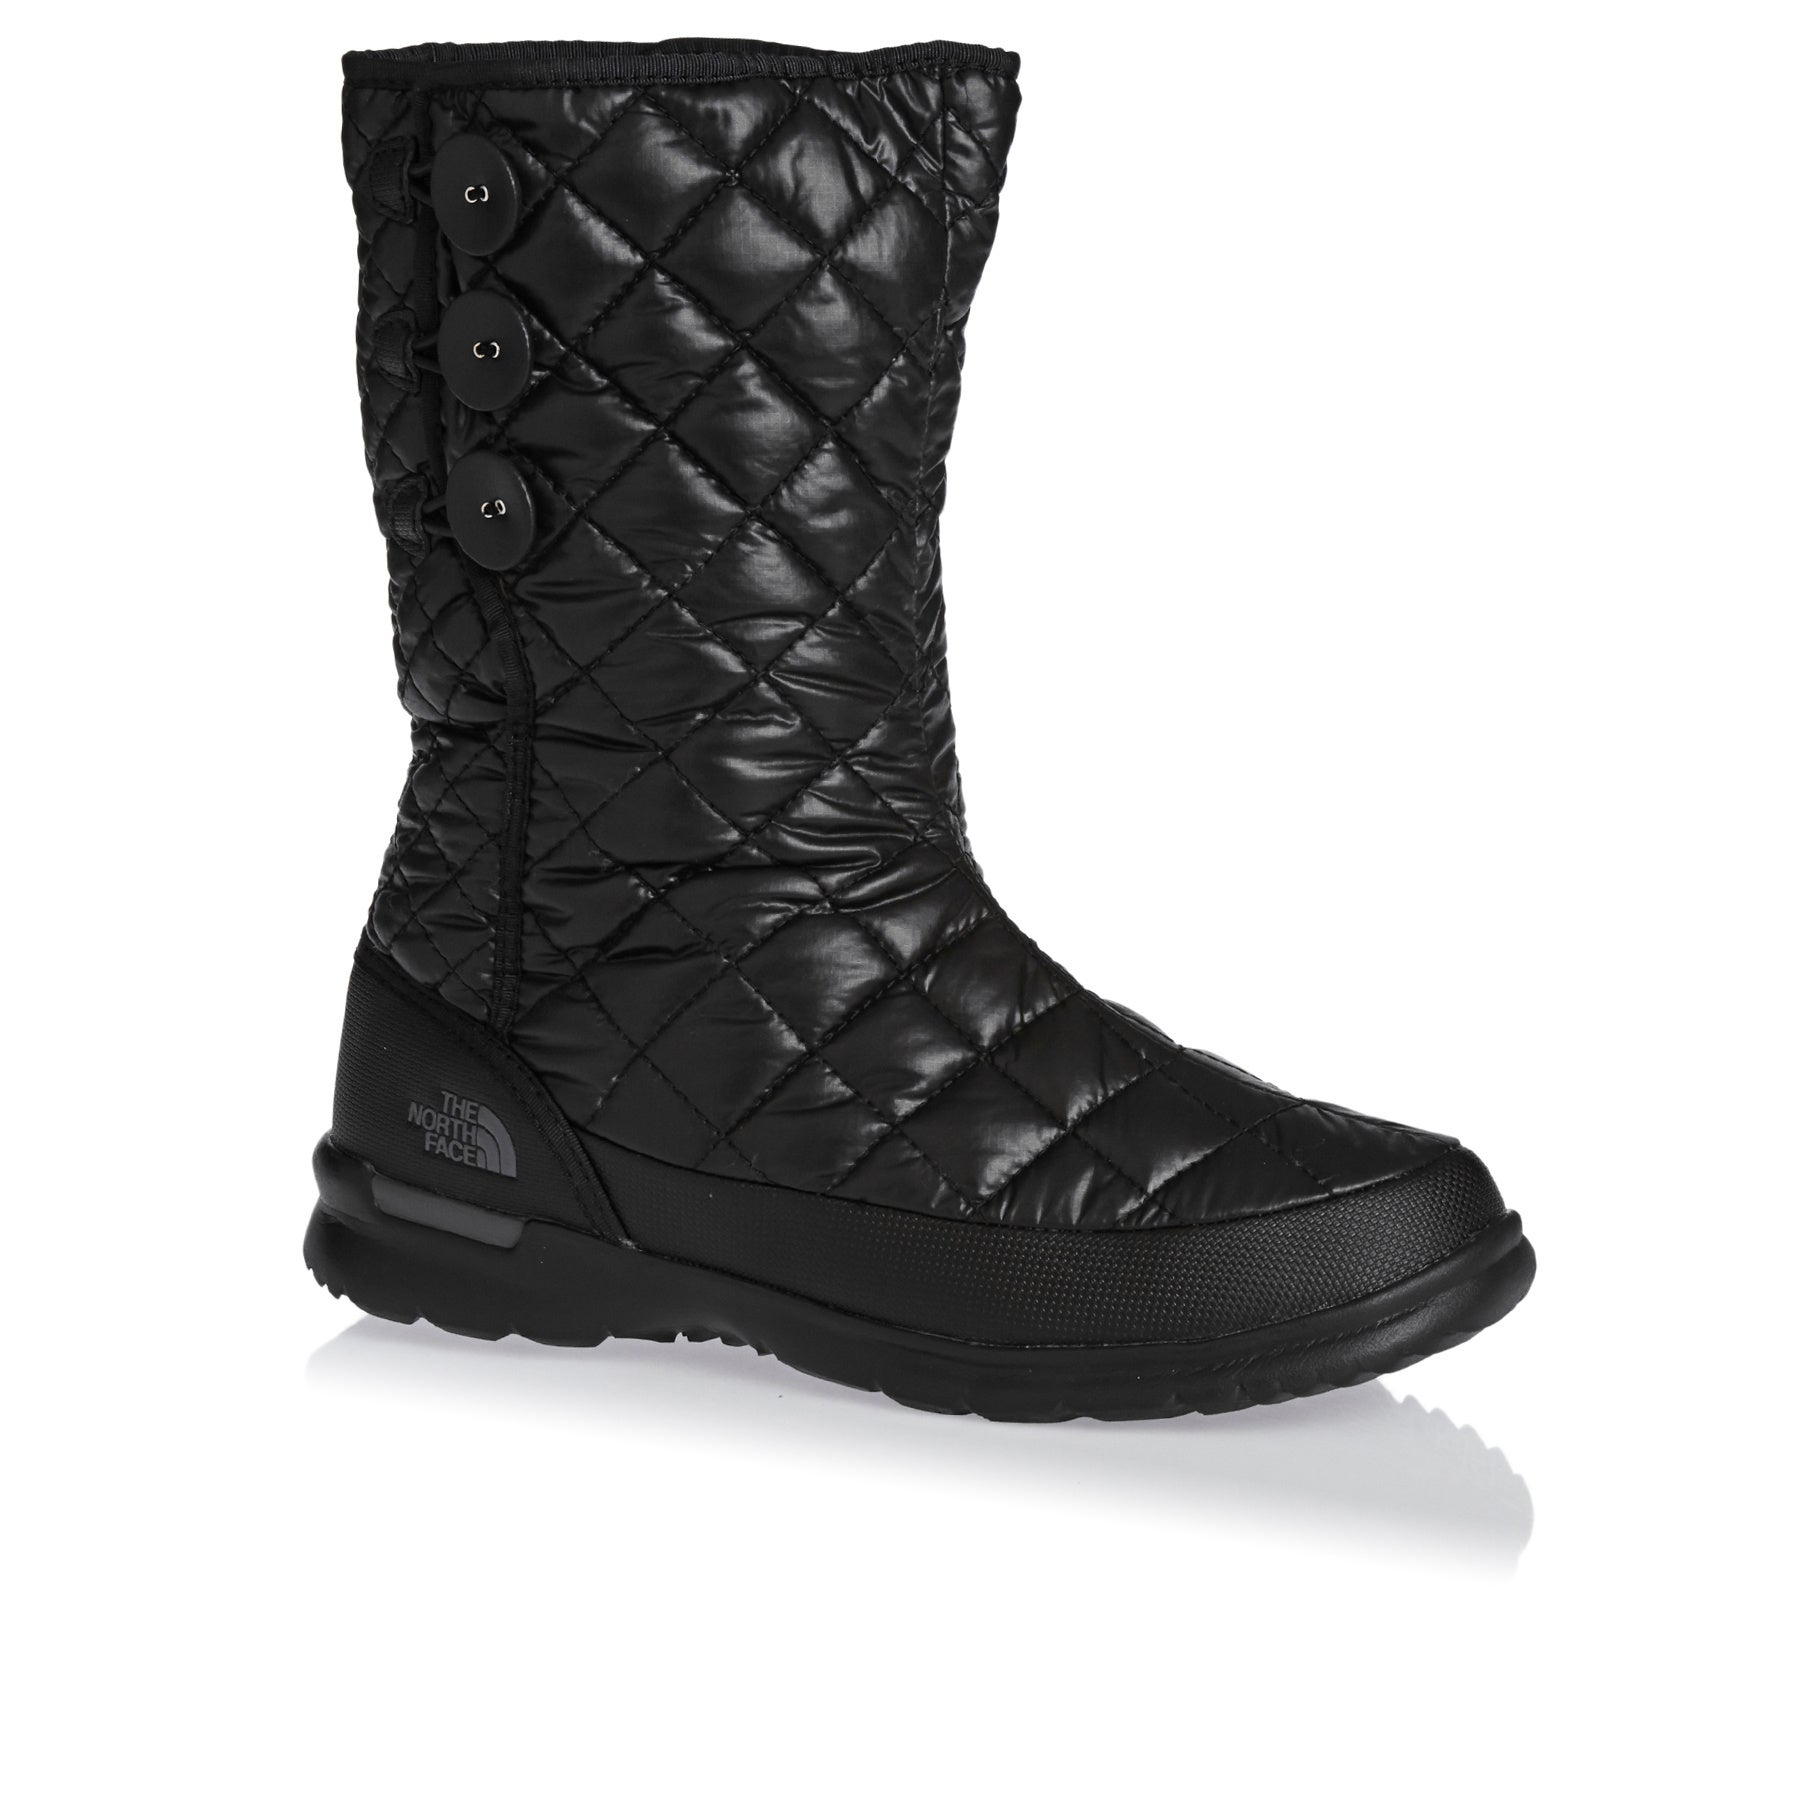 North Face Thermoball Buttonup Insulated Boots - Black